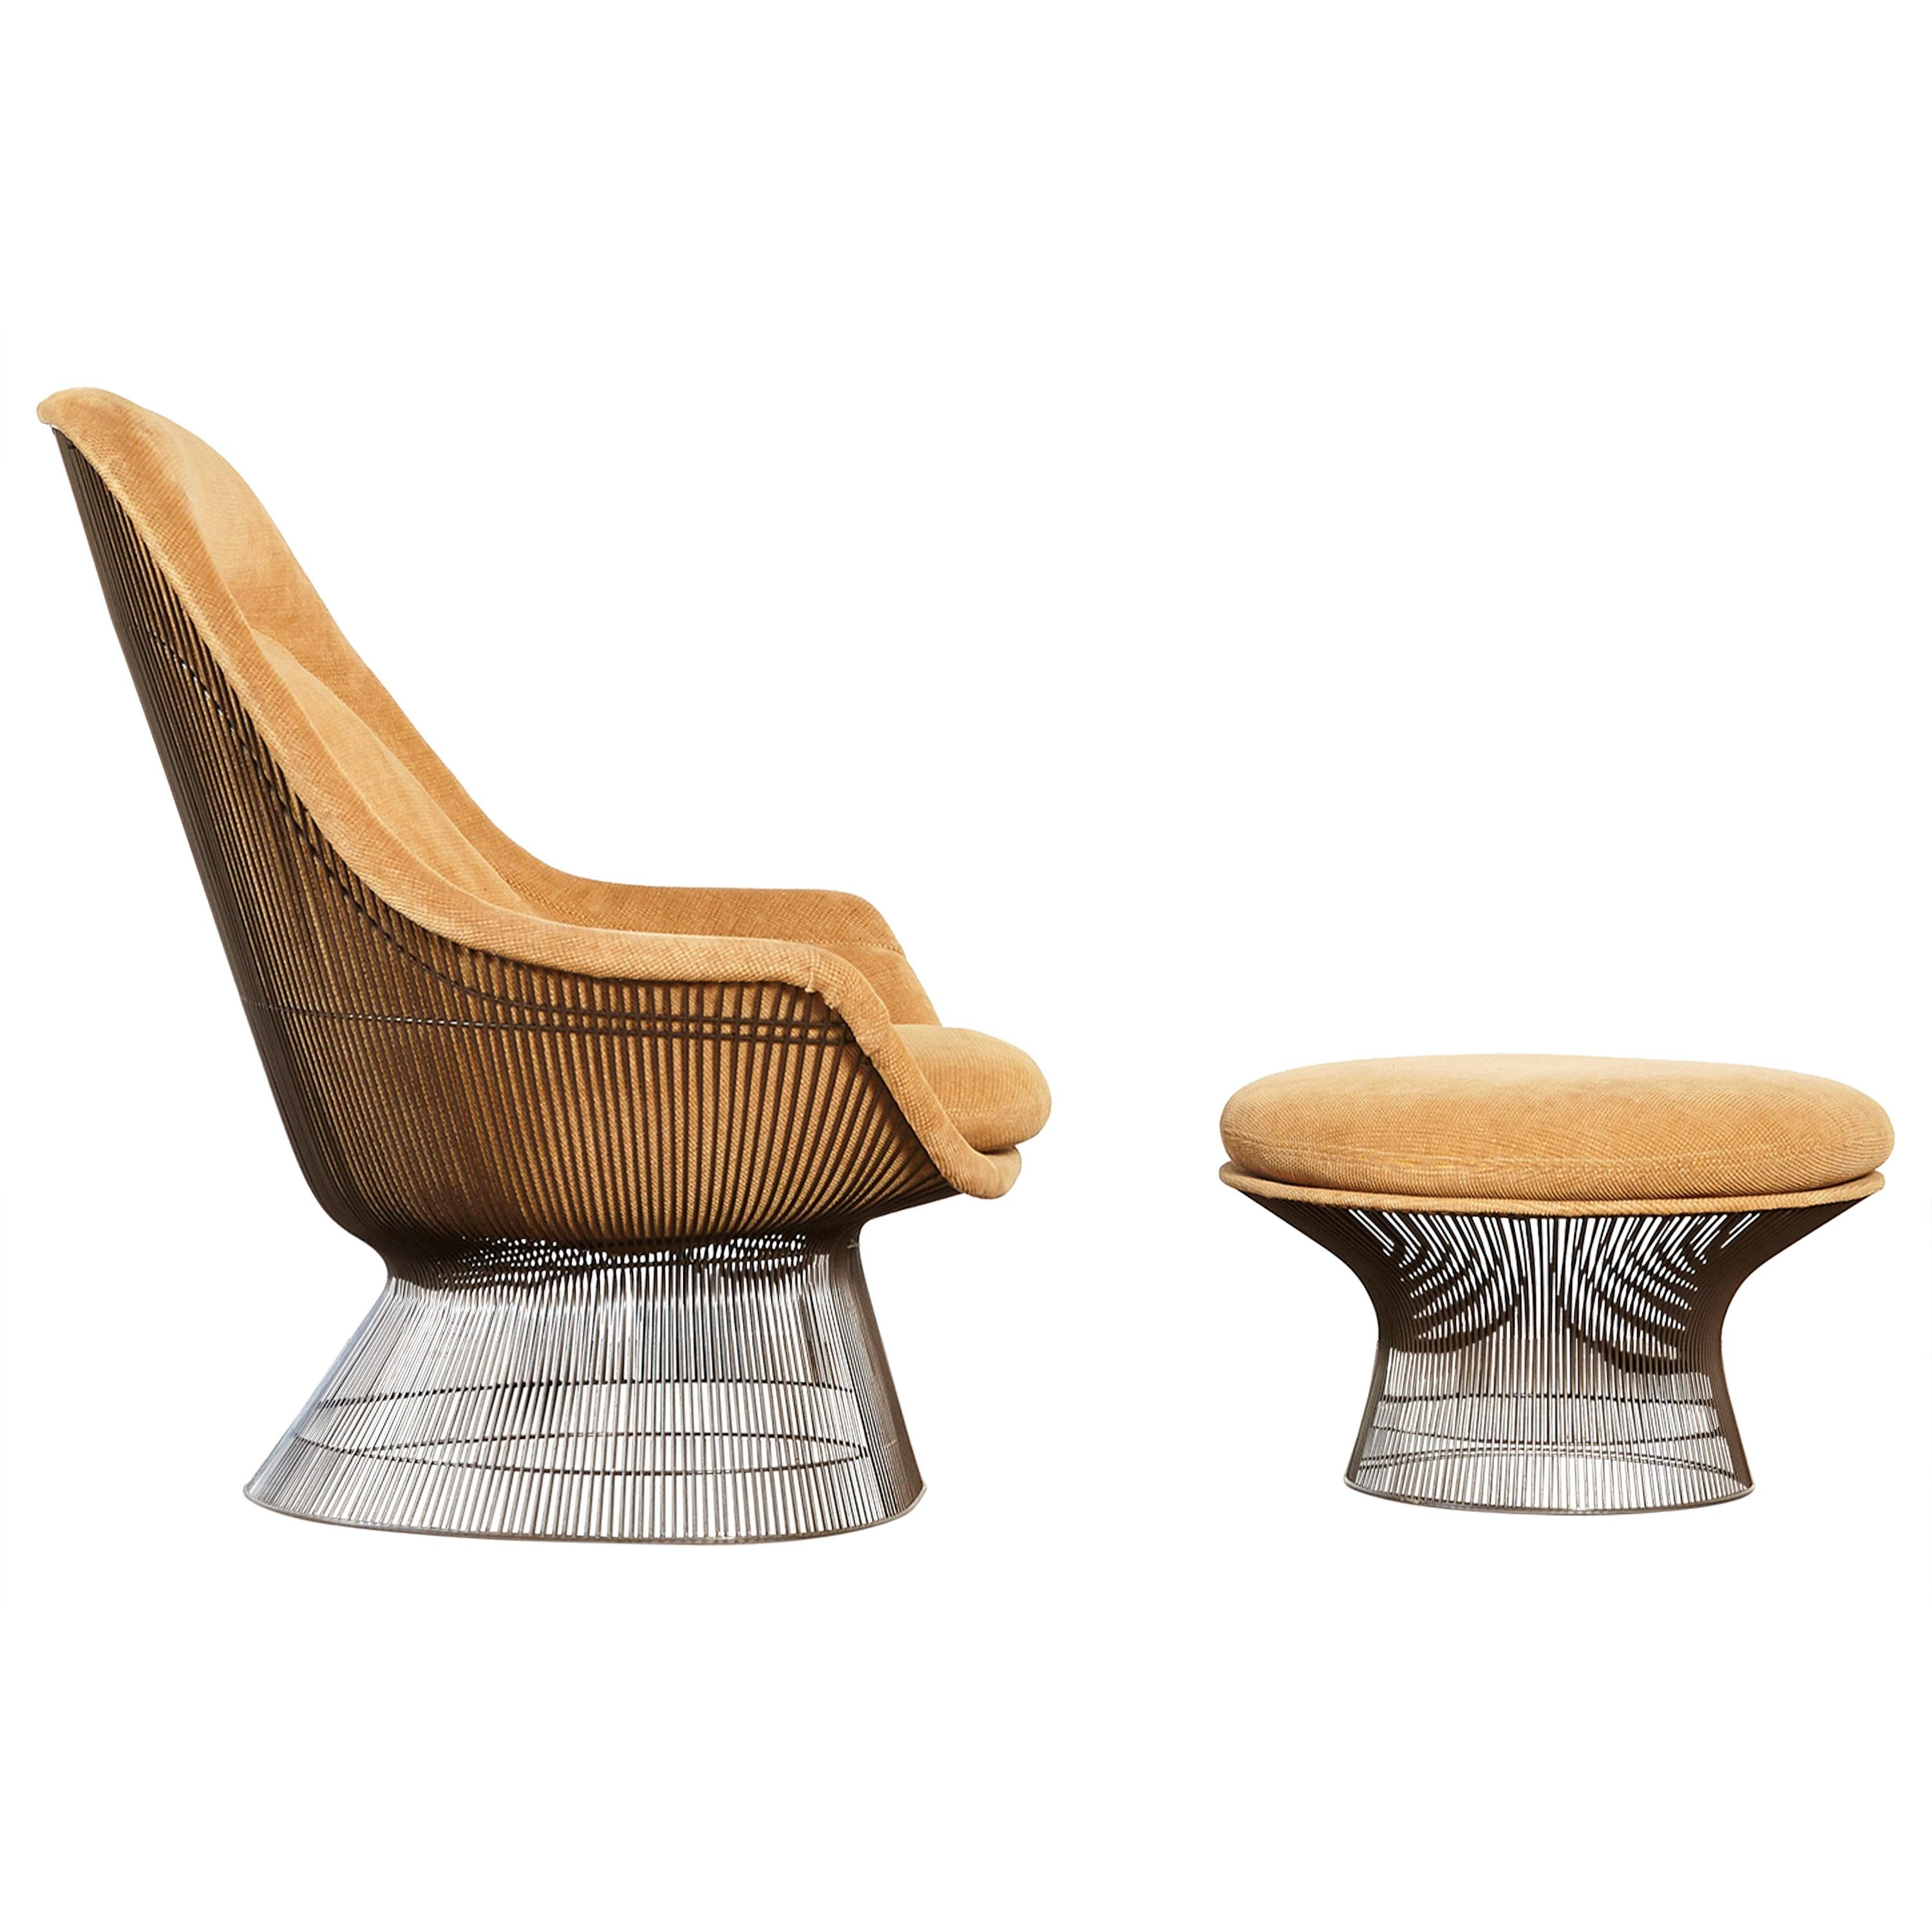 Warren Platner for Knoll Bronze Lounge Chair and Ottoman, USA, 1960s/70s